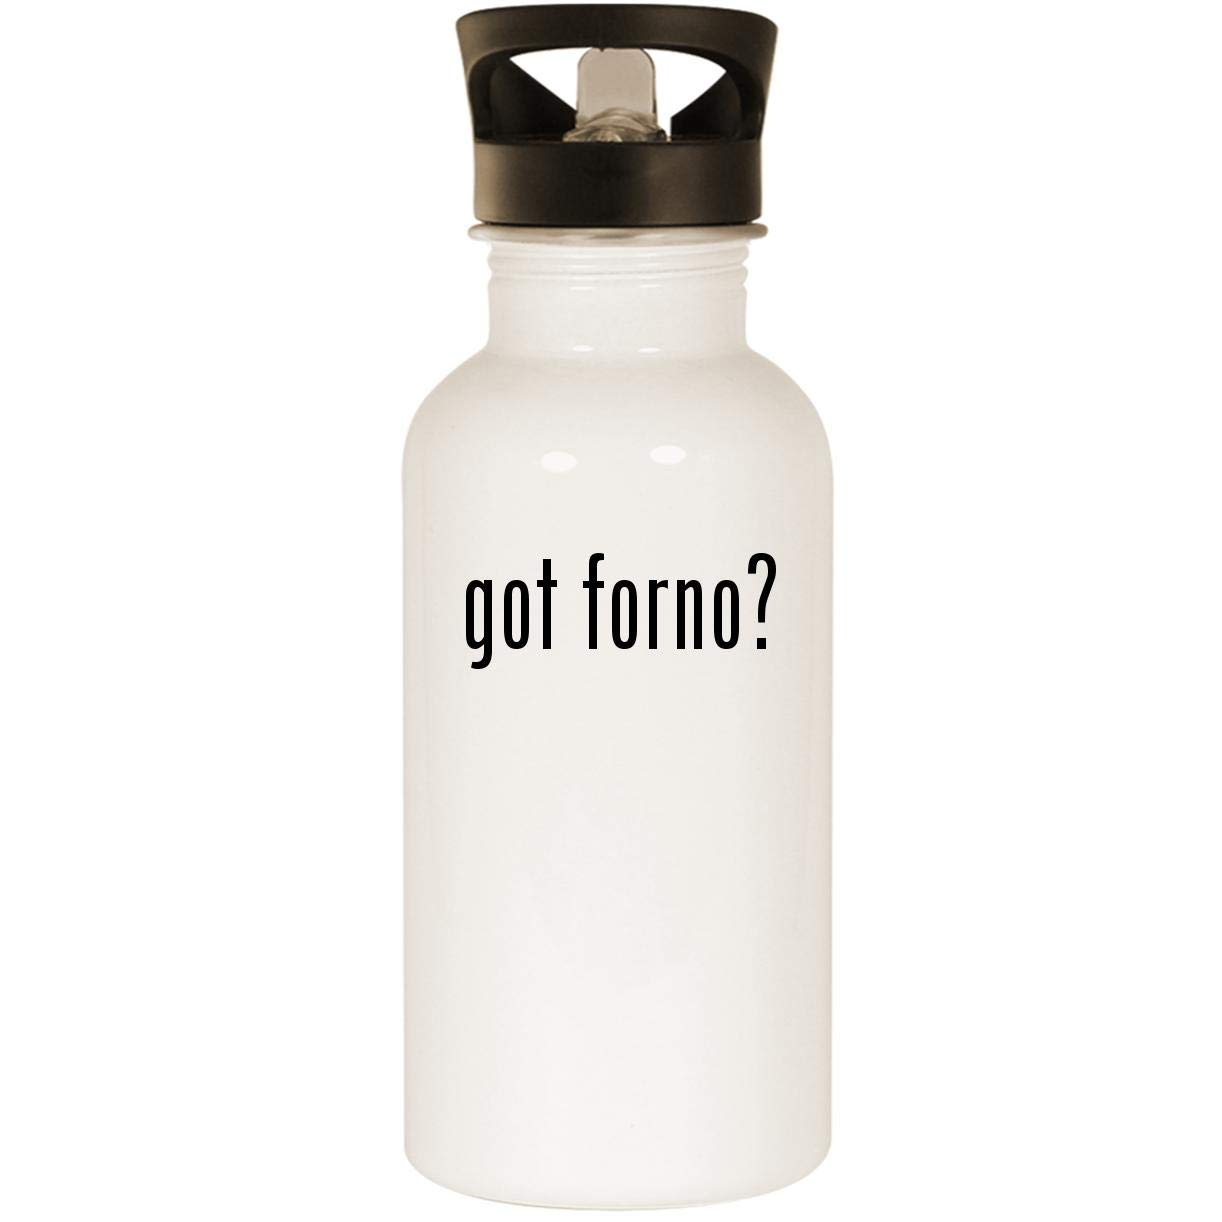 got forno? - Stainless Steel 20oz Road Ready Water Bottle, White